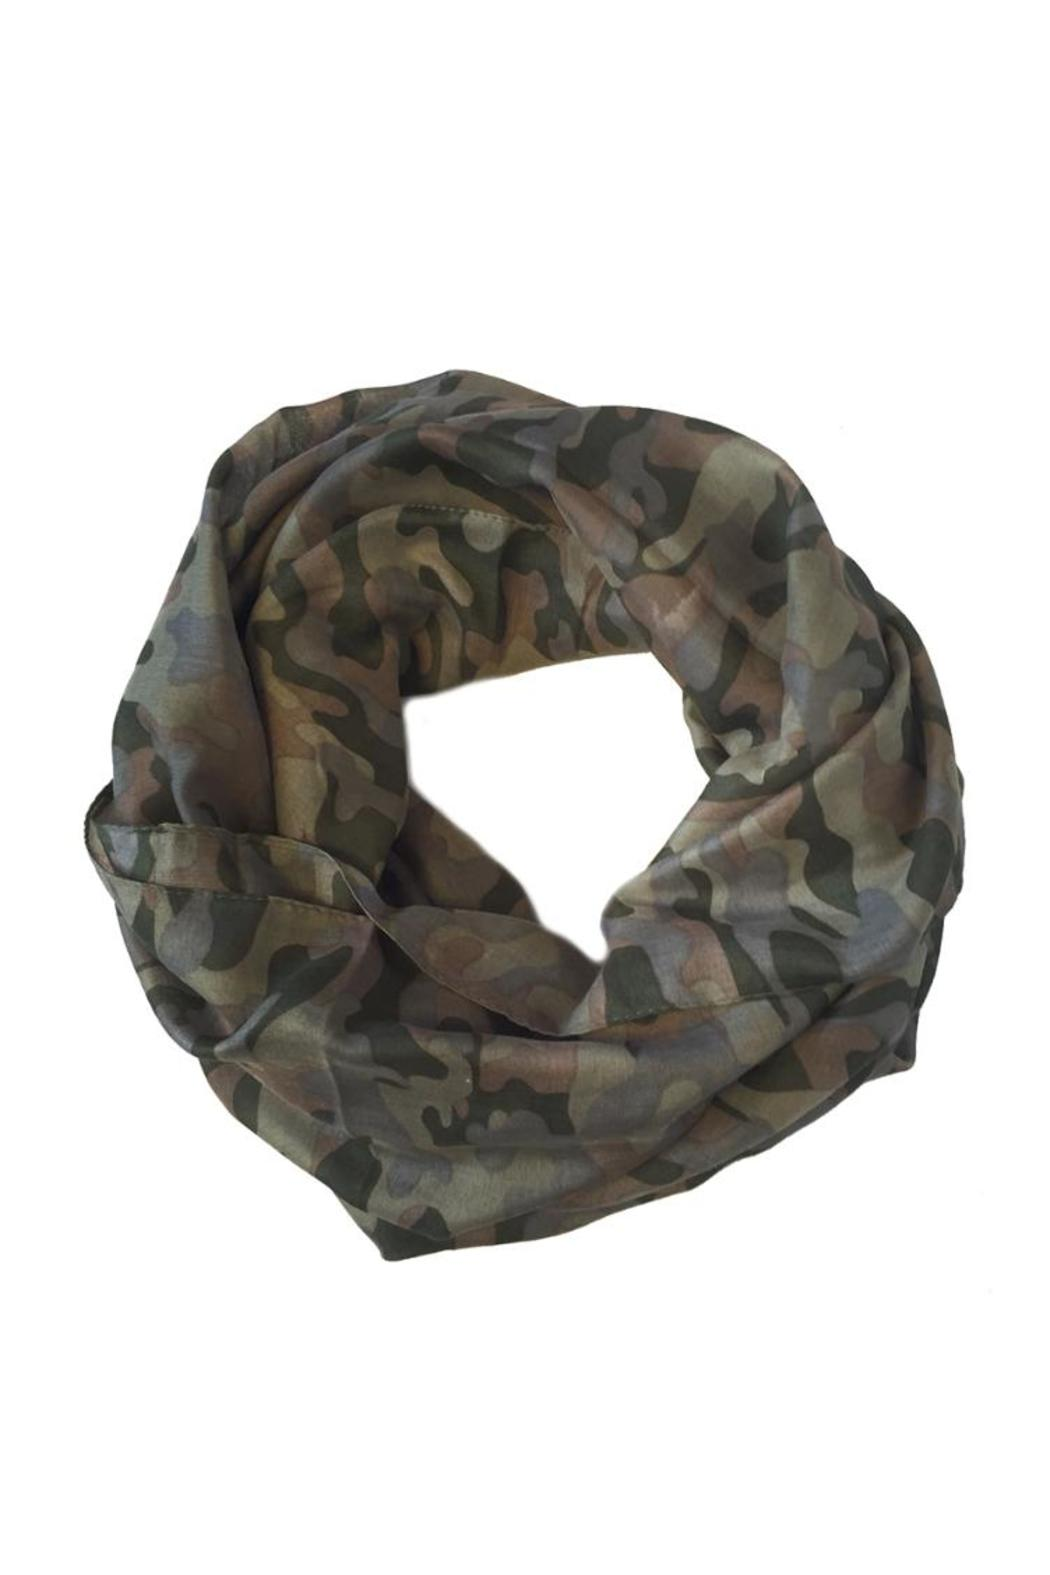 Camo Infinity Scarf From Las Vegas By Glam Squad Shop